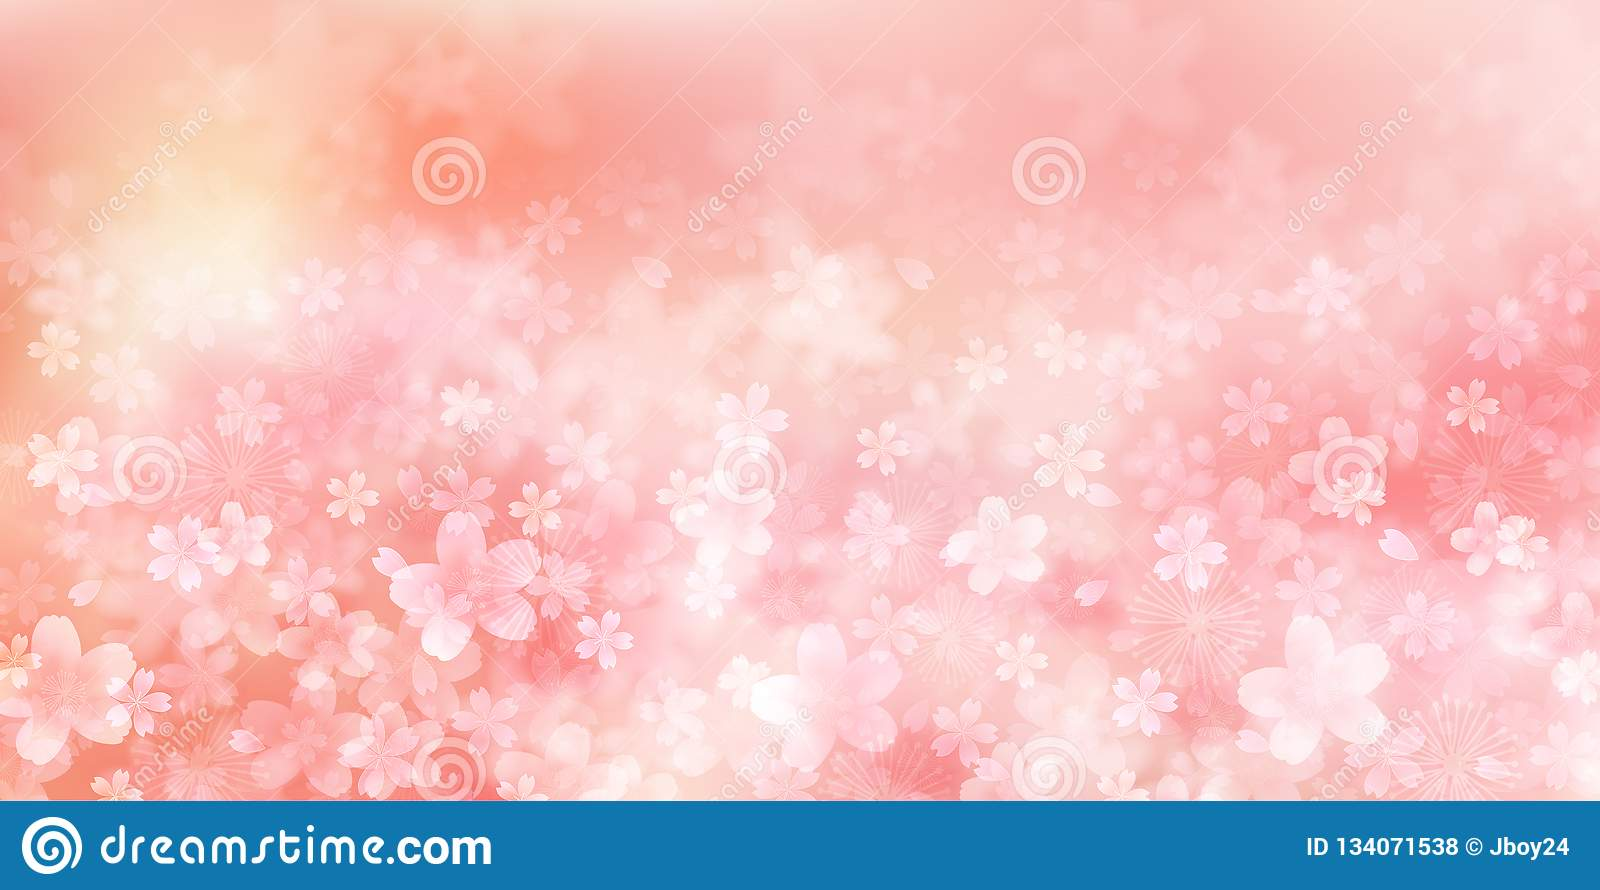 Cherry illustration material that imaged Japanese spring